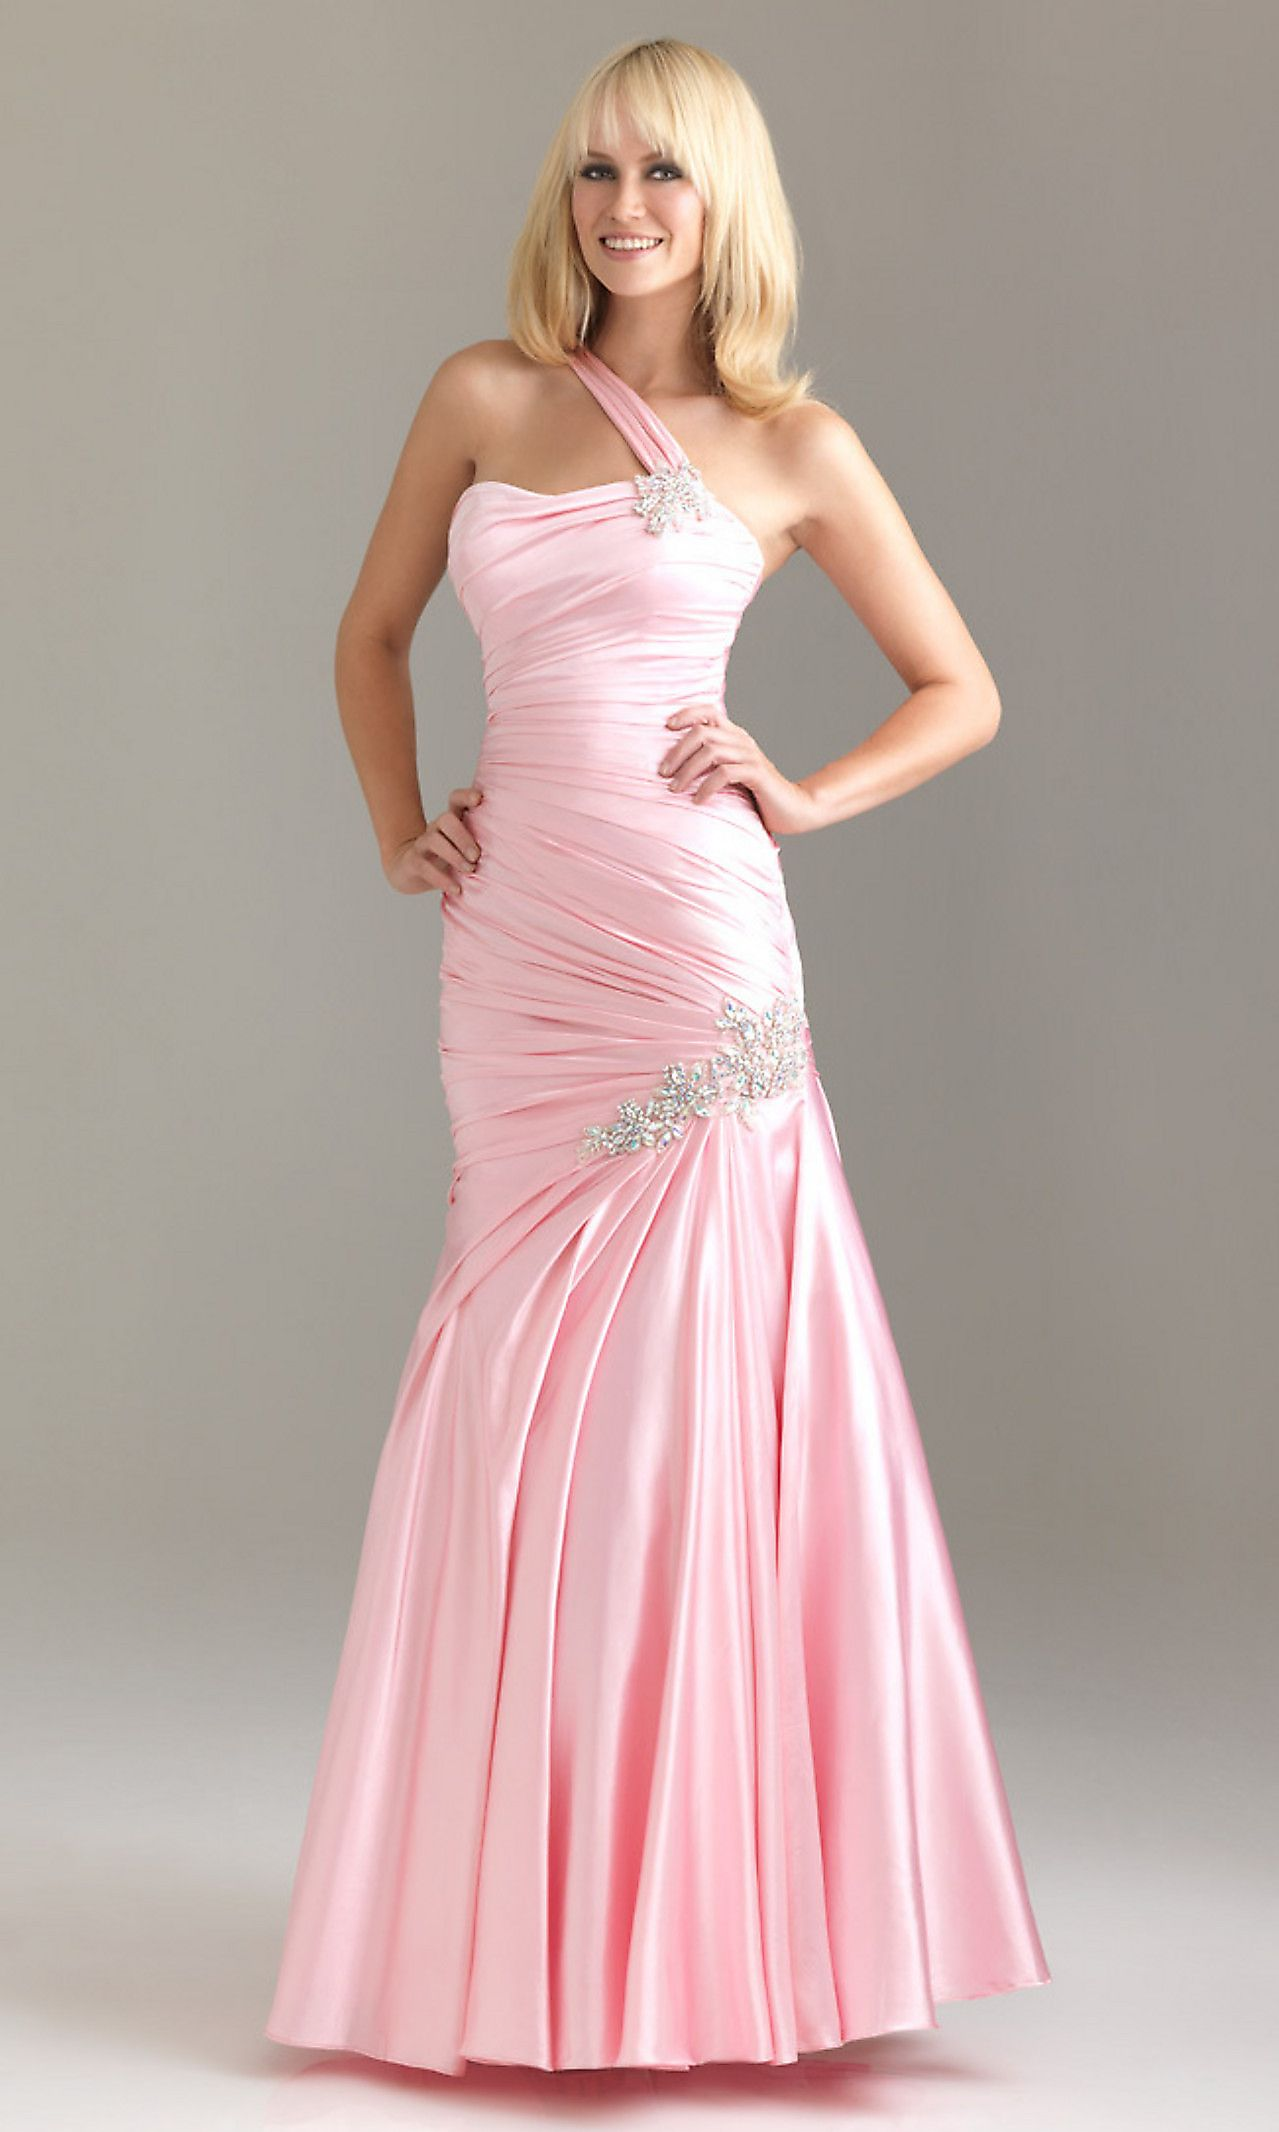 Pin by Emilee Cowan on Fashion | Pinterest | Prom dresses, A line ...